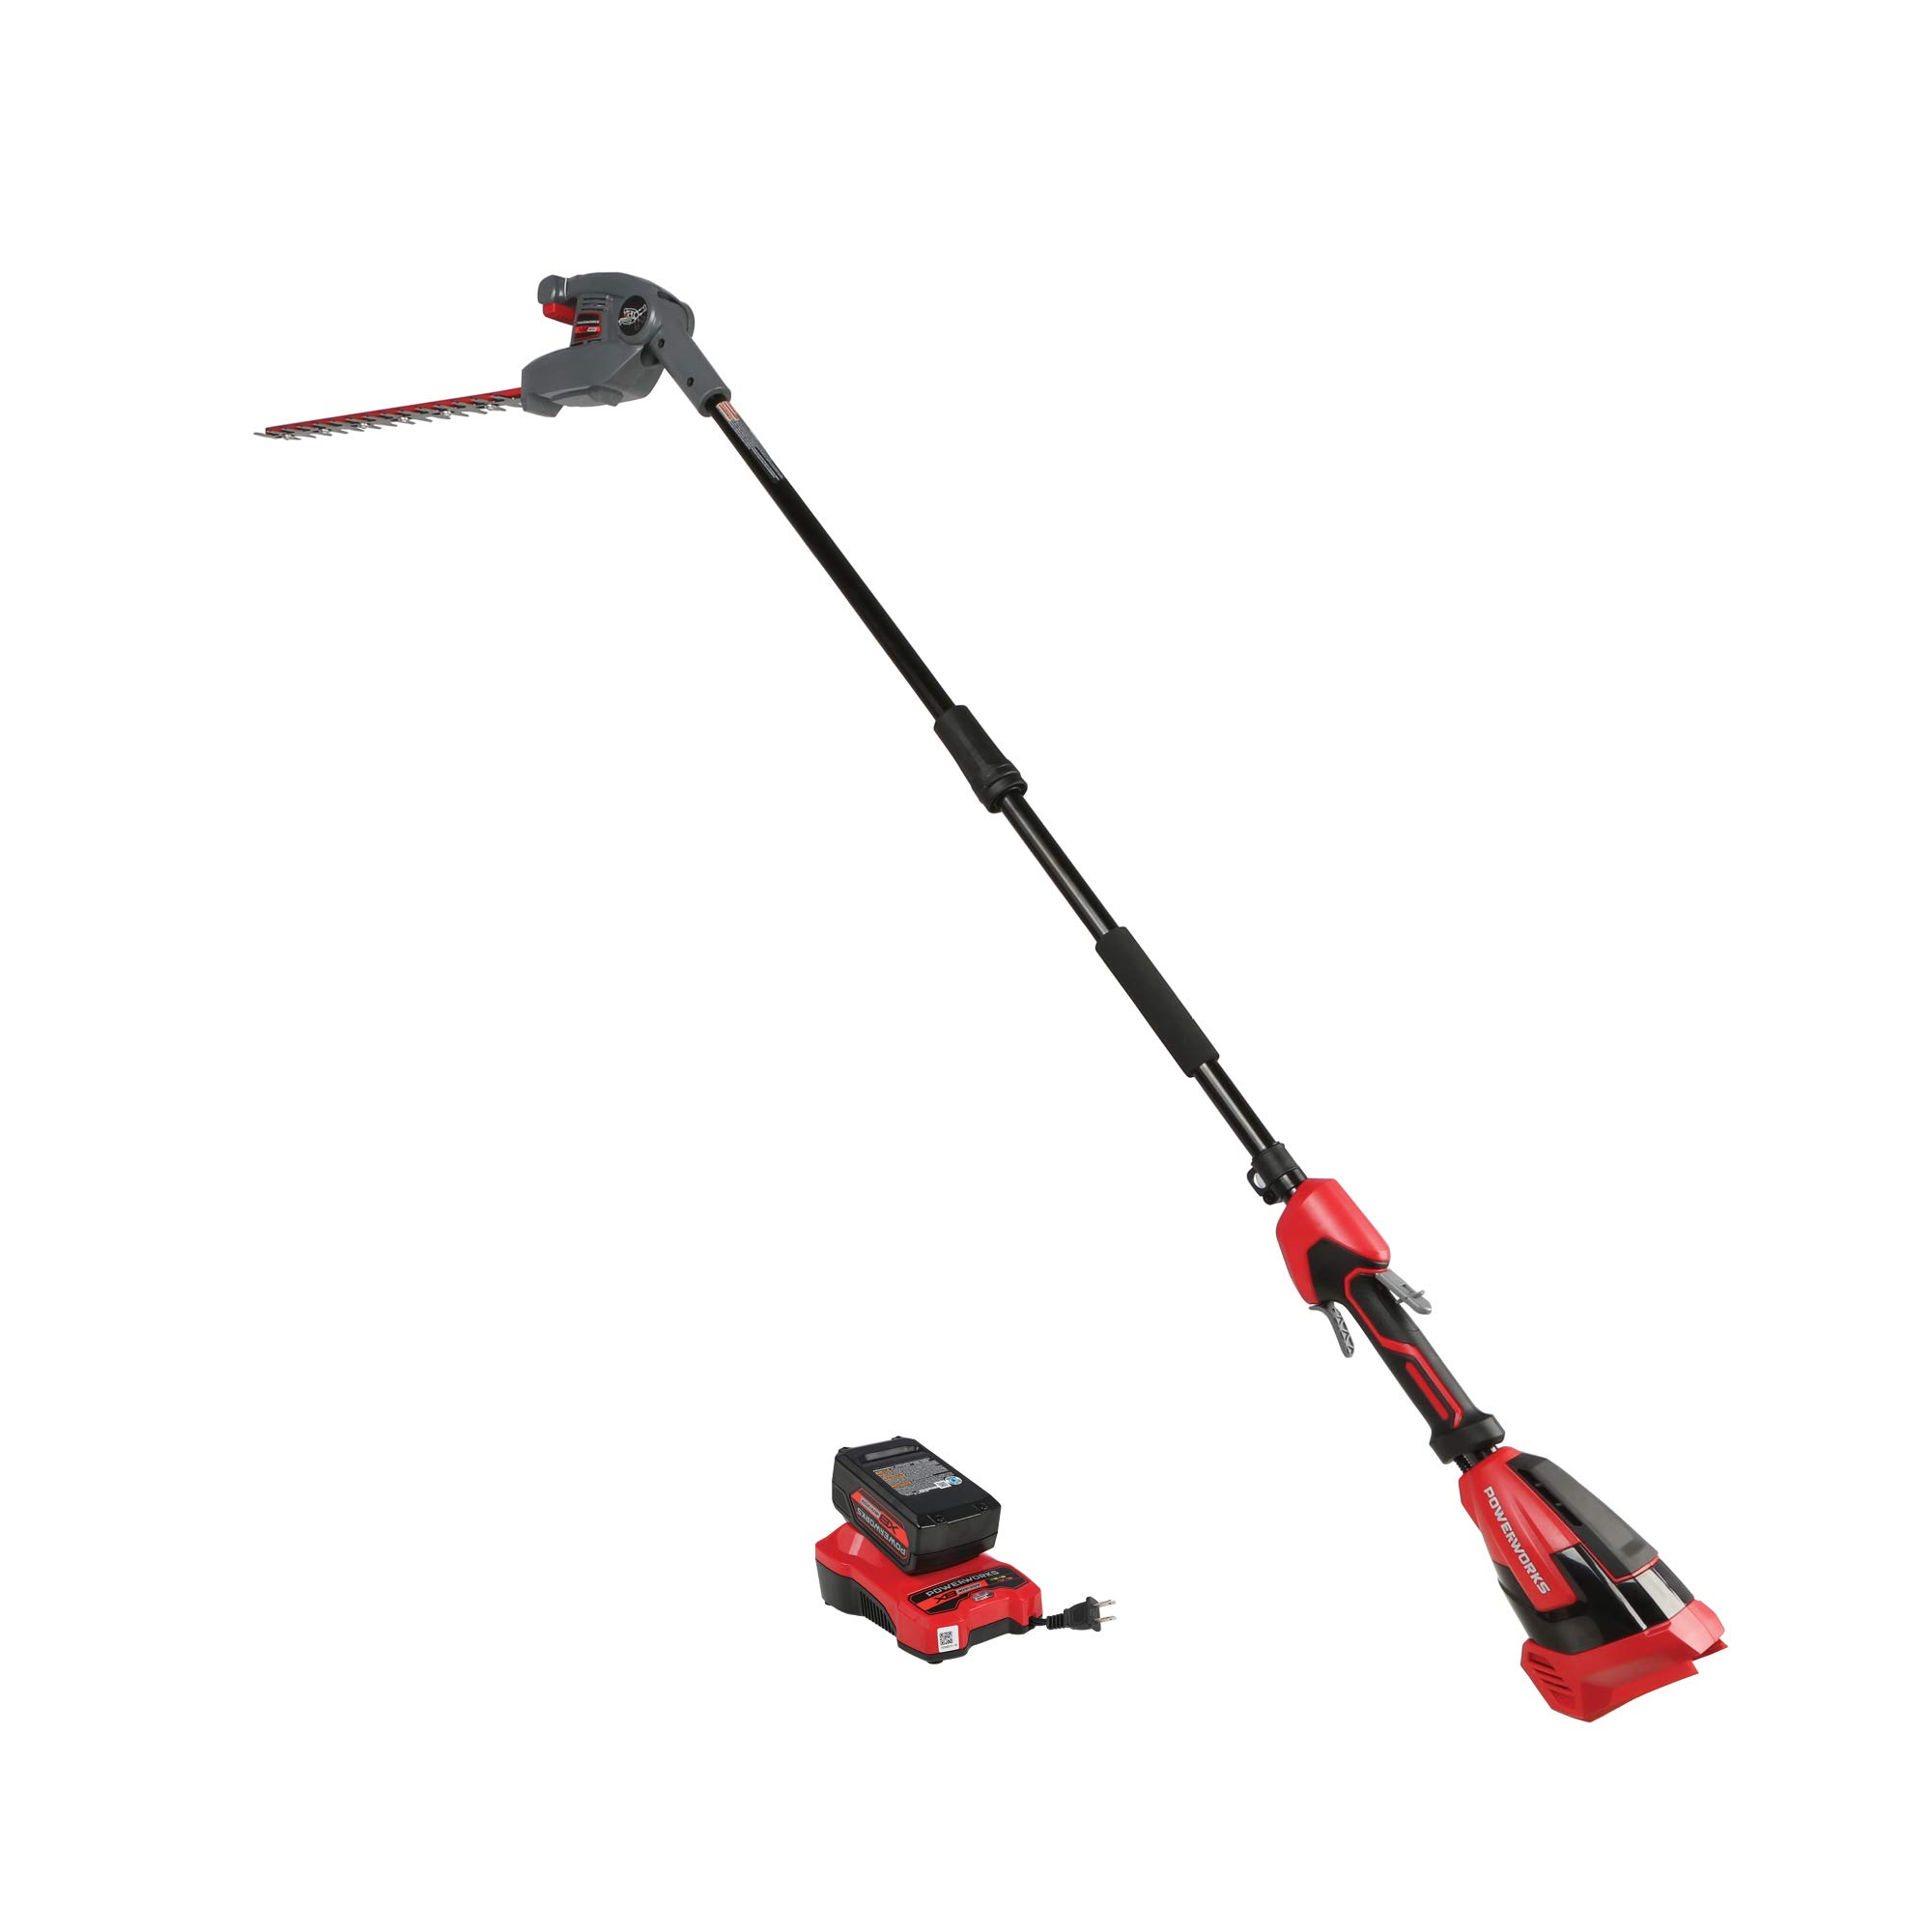 POWERWORKS XB 40V 20-Inch Cordless Pole Hedge Trimmer, 2Ah Battery and Charger Included PTP301